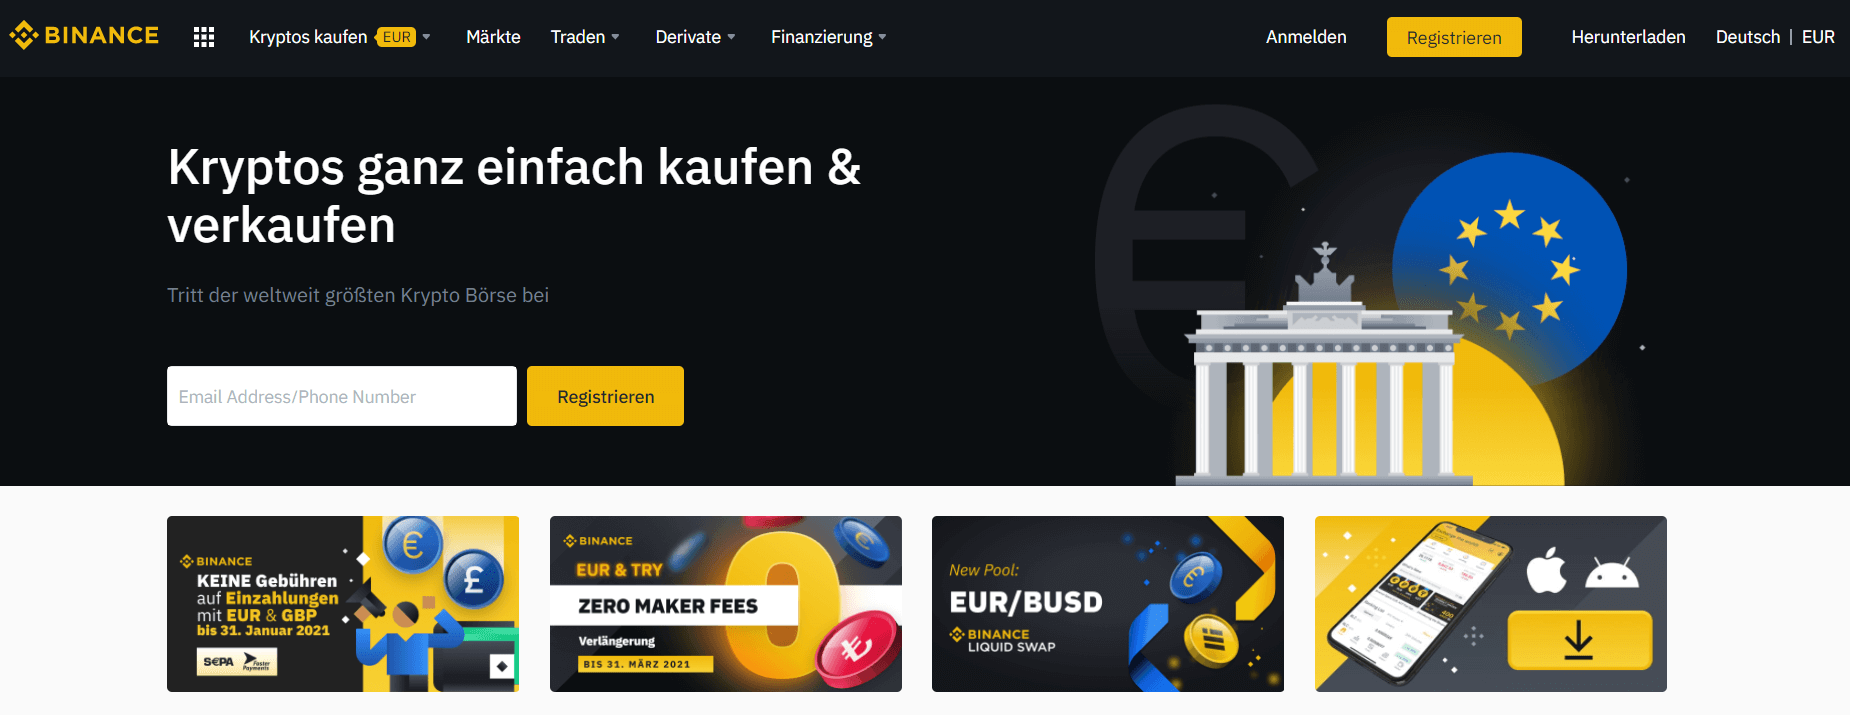 Binance Header